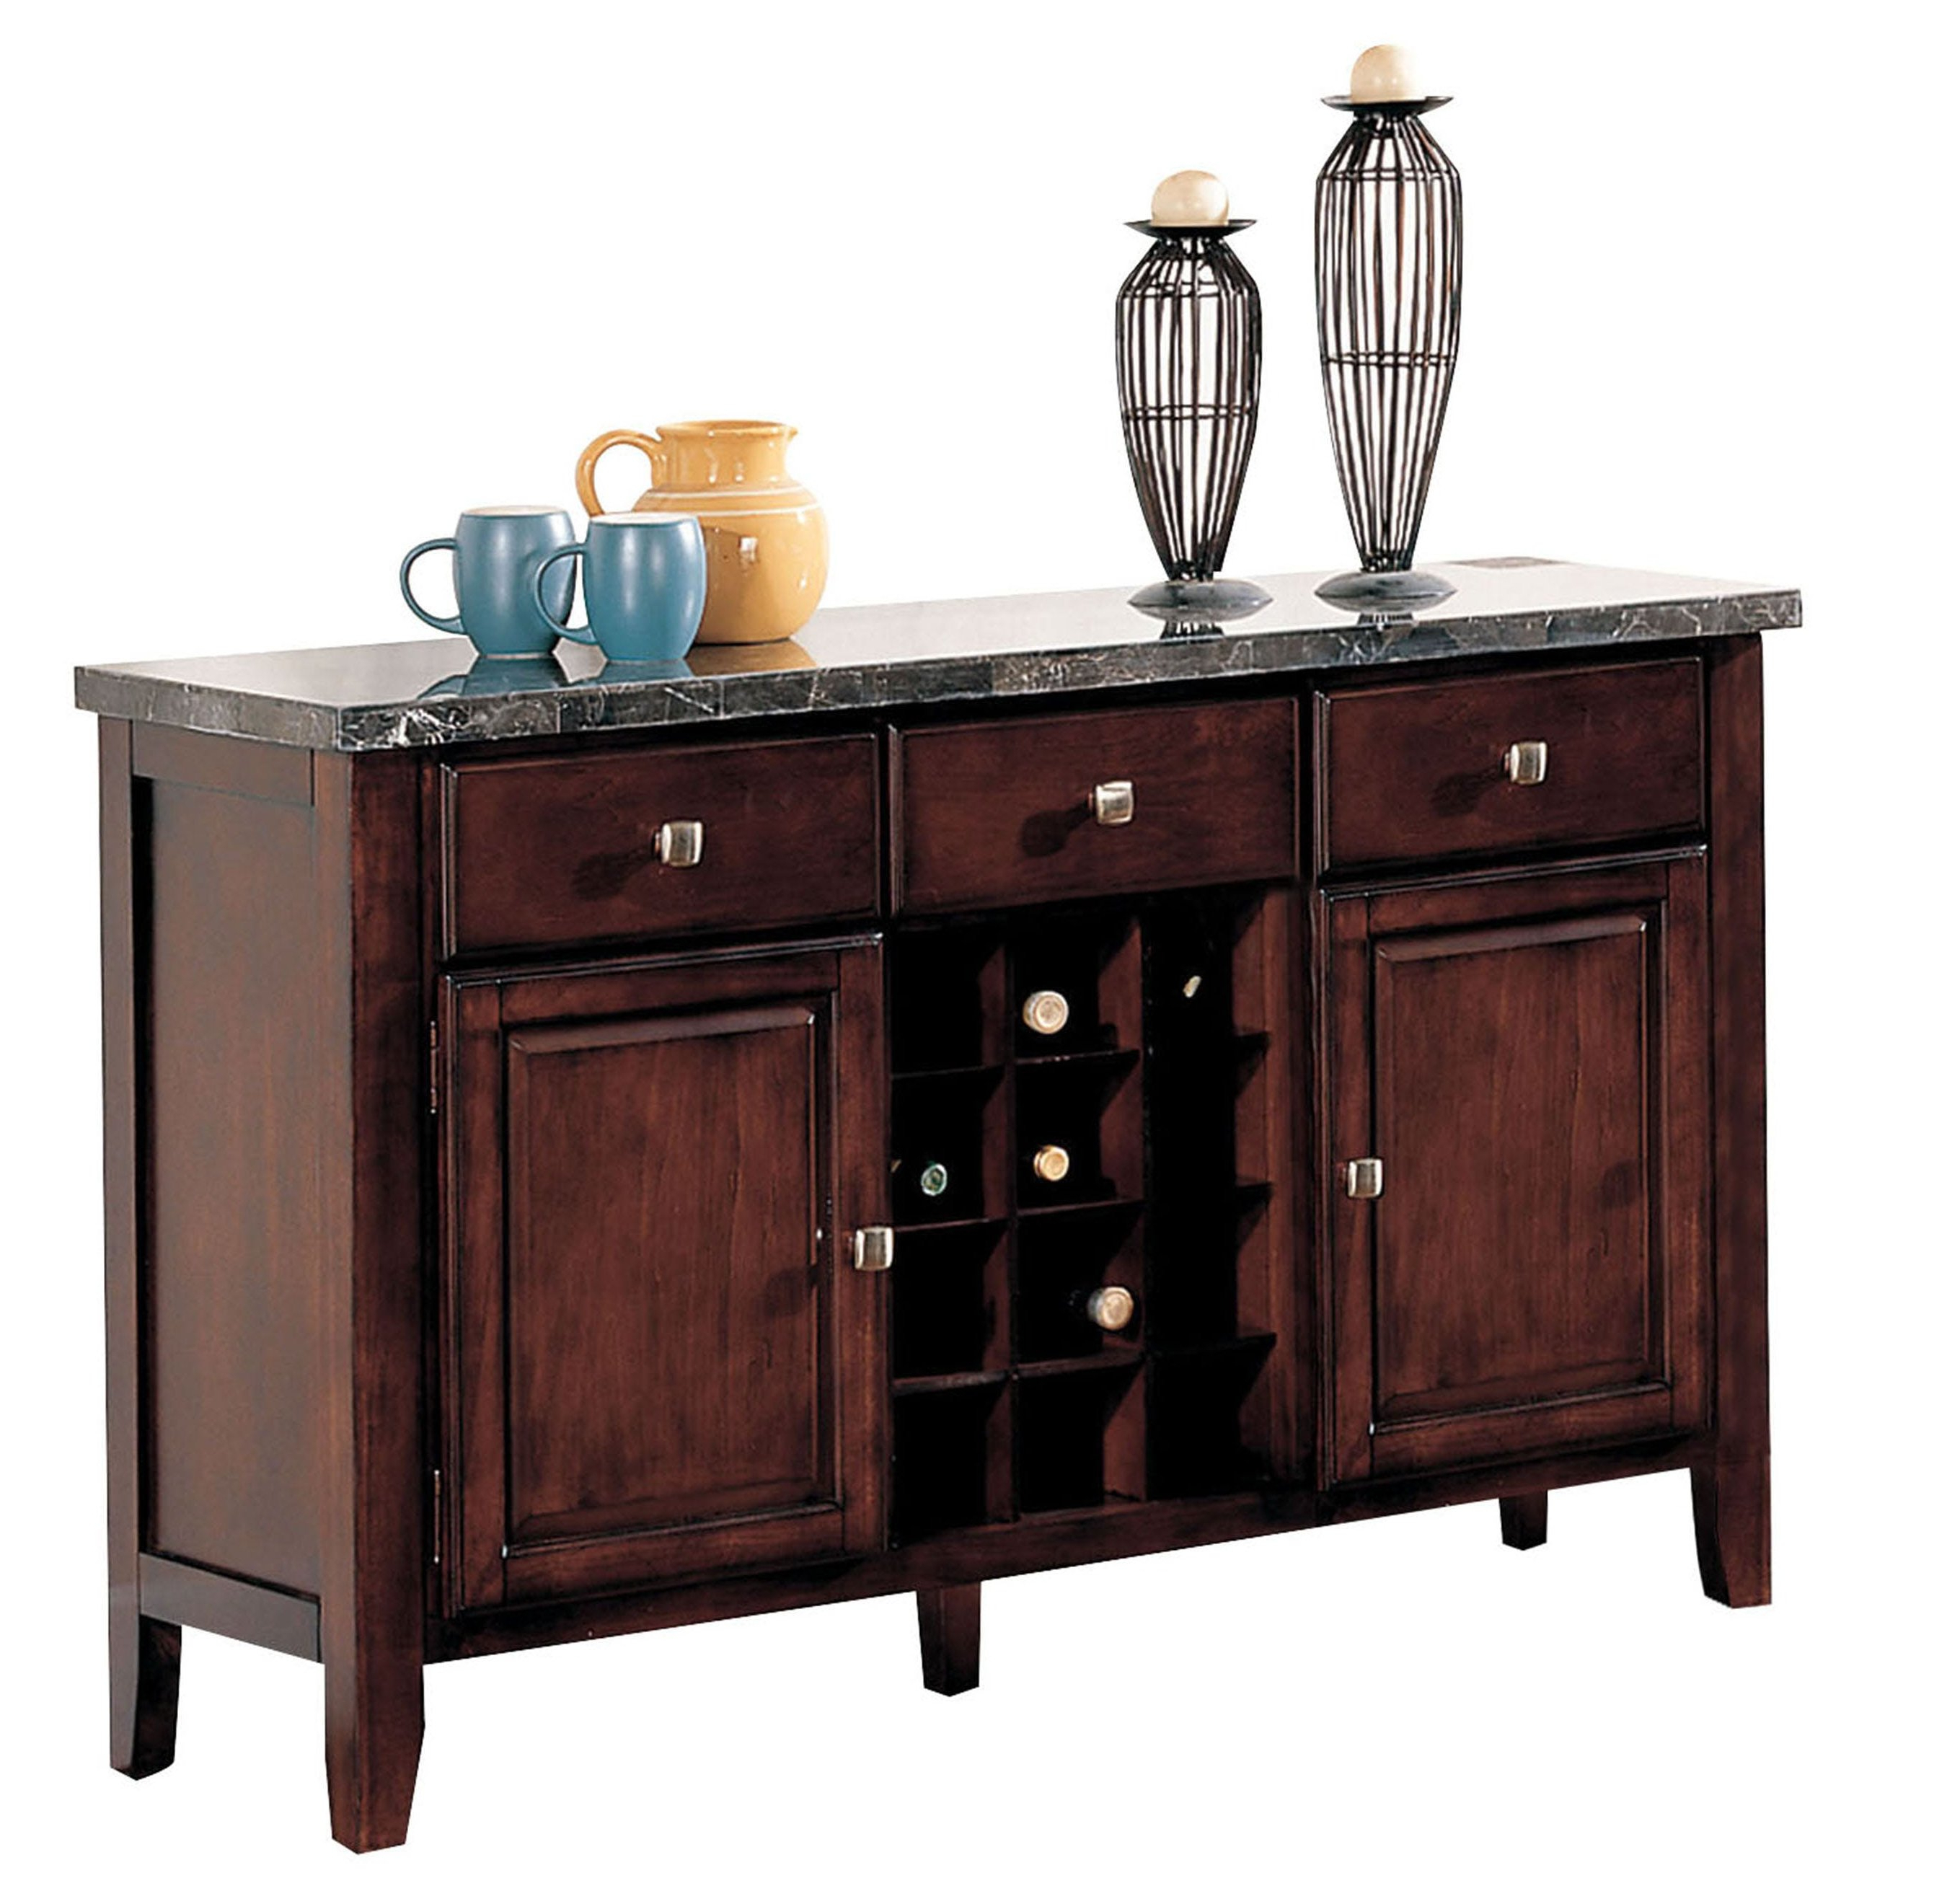 Hinkley Sideboard Pertaining To Best And Newest Nashoba Sideboards (View 16 of 20)